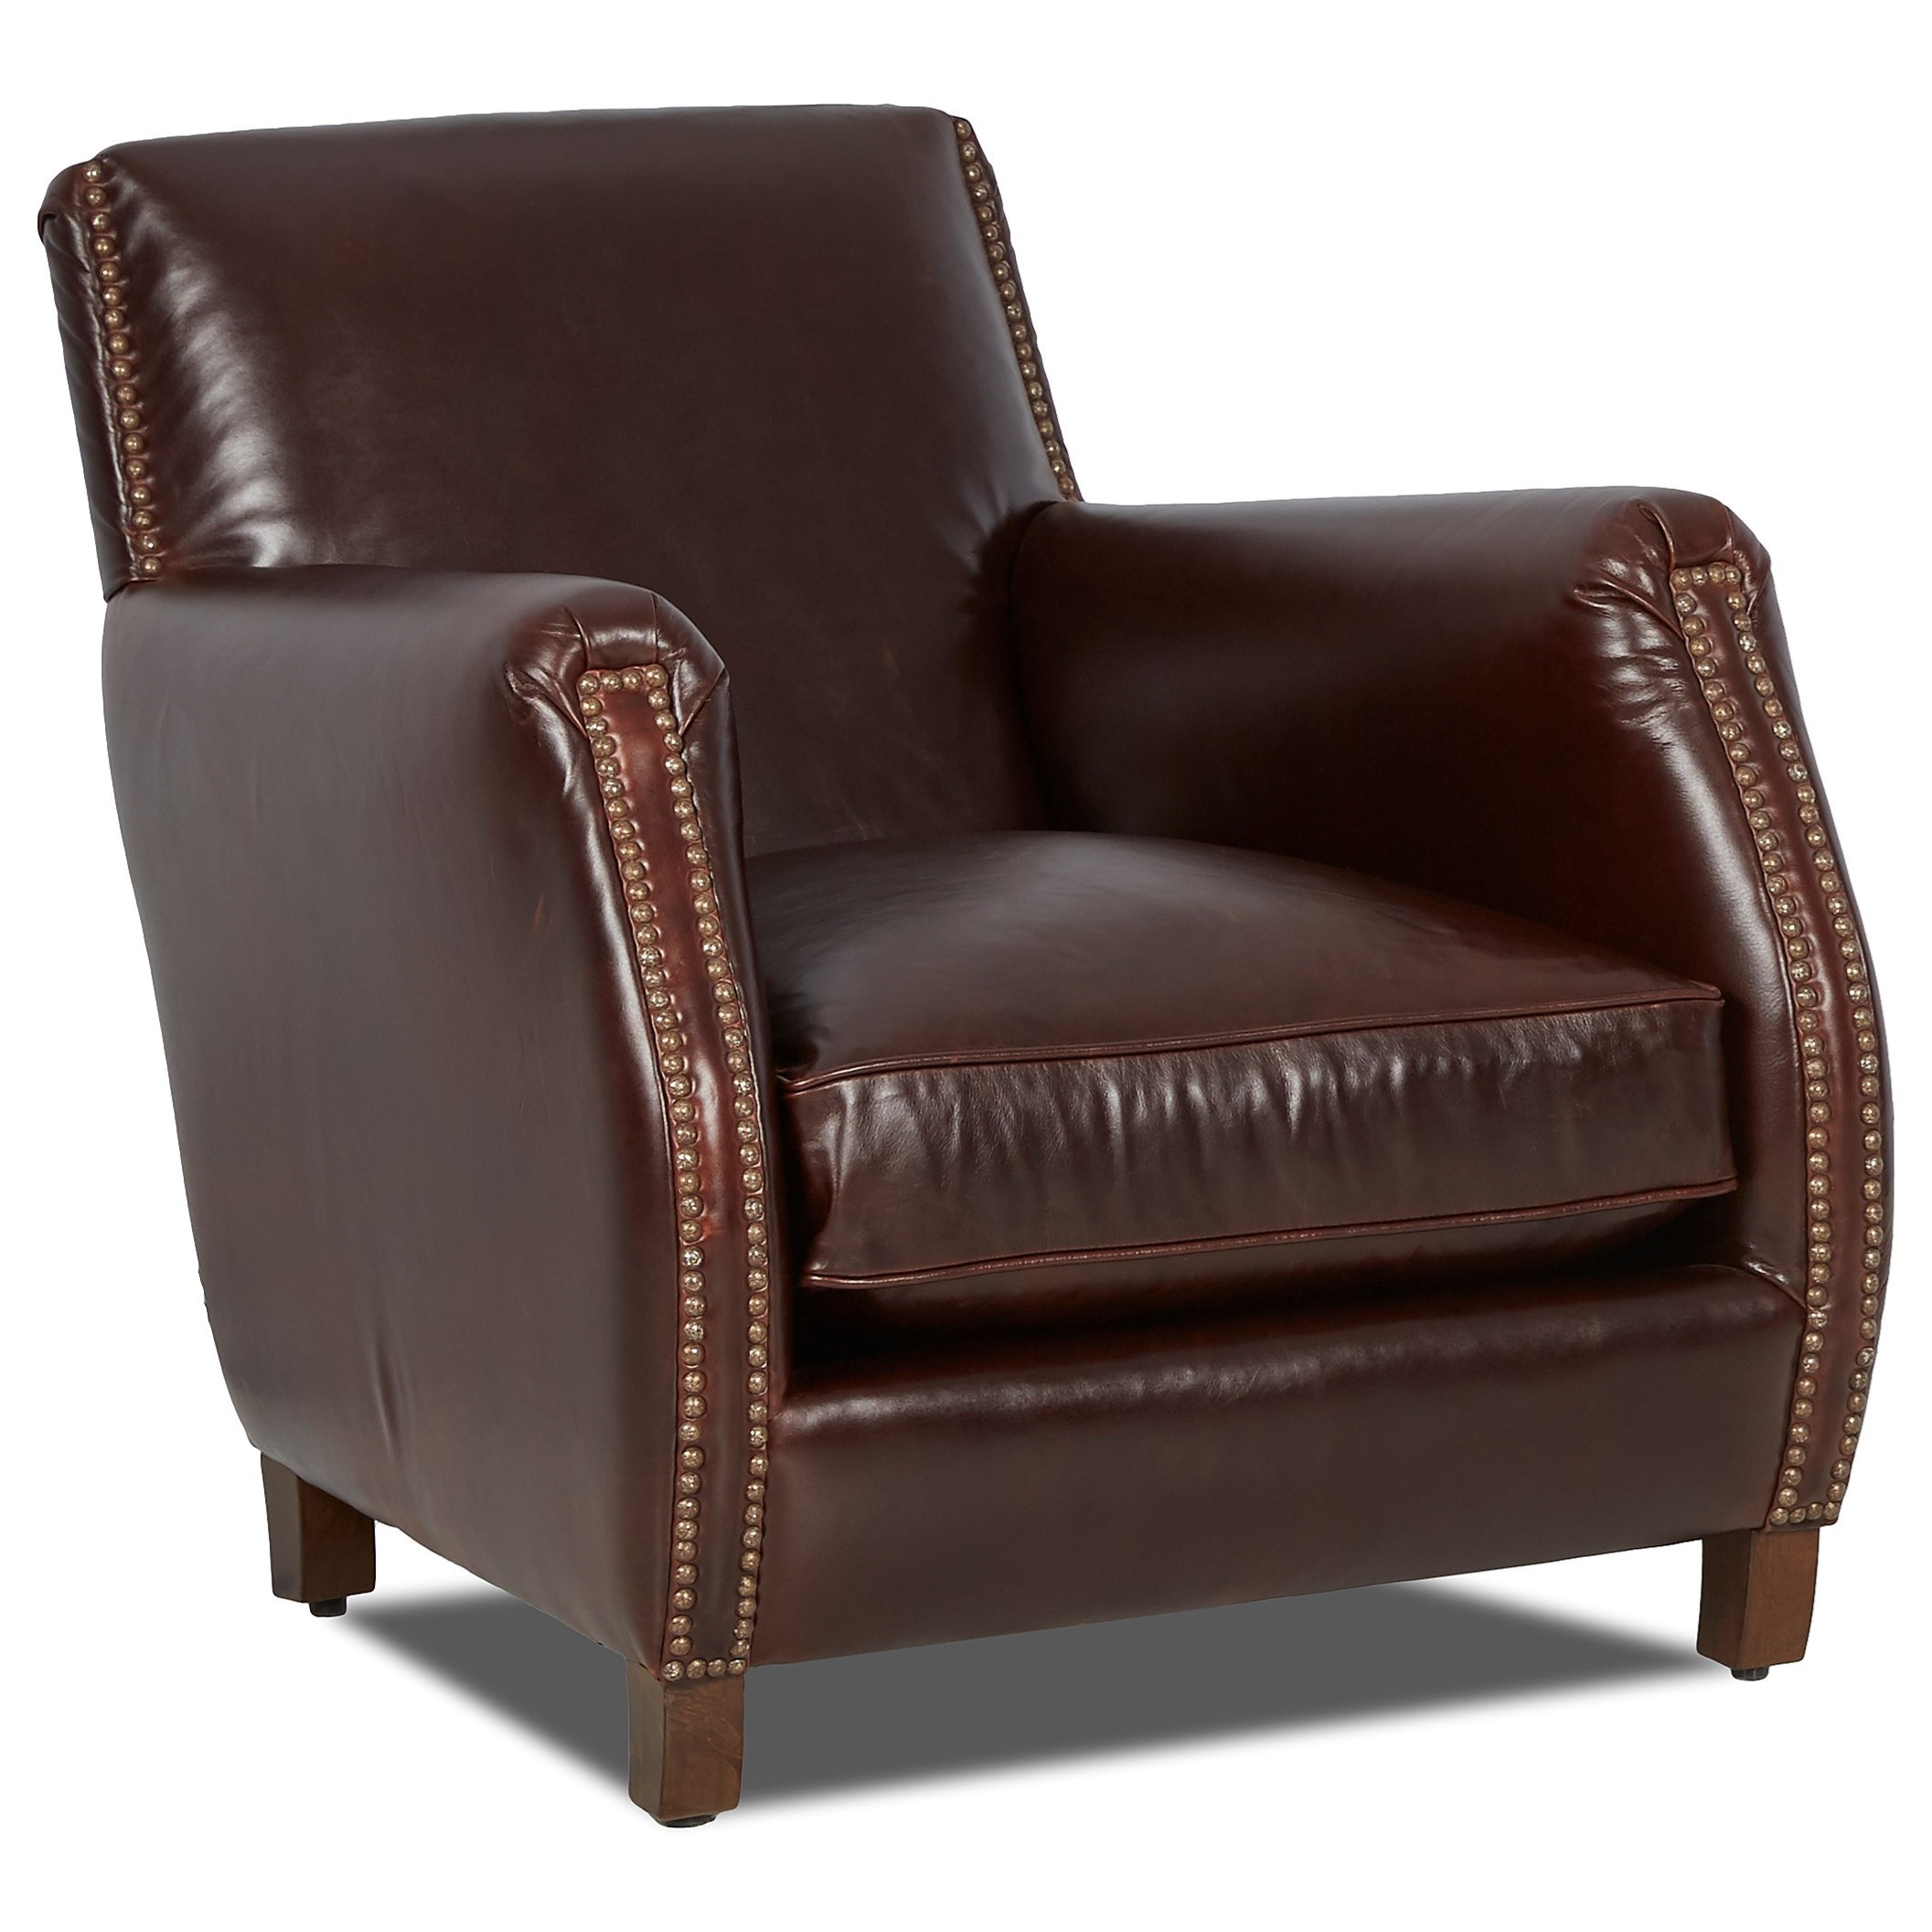 Beau Chairs And Accents Rocket Chair With Nailhead Studs By Klaussner